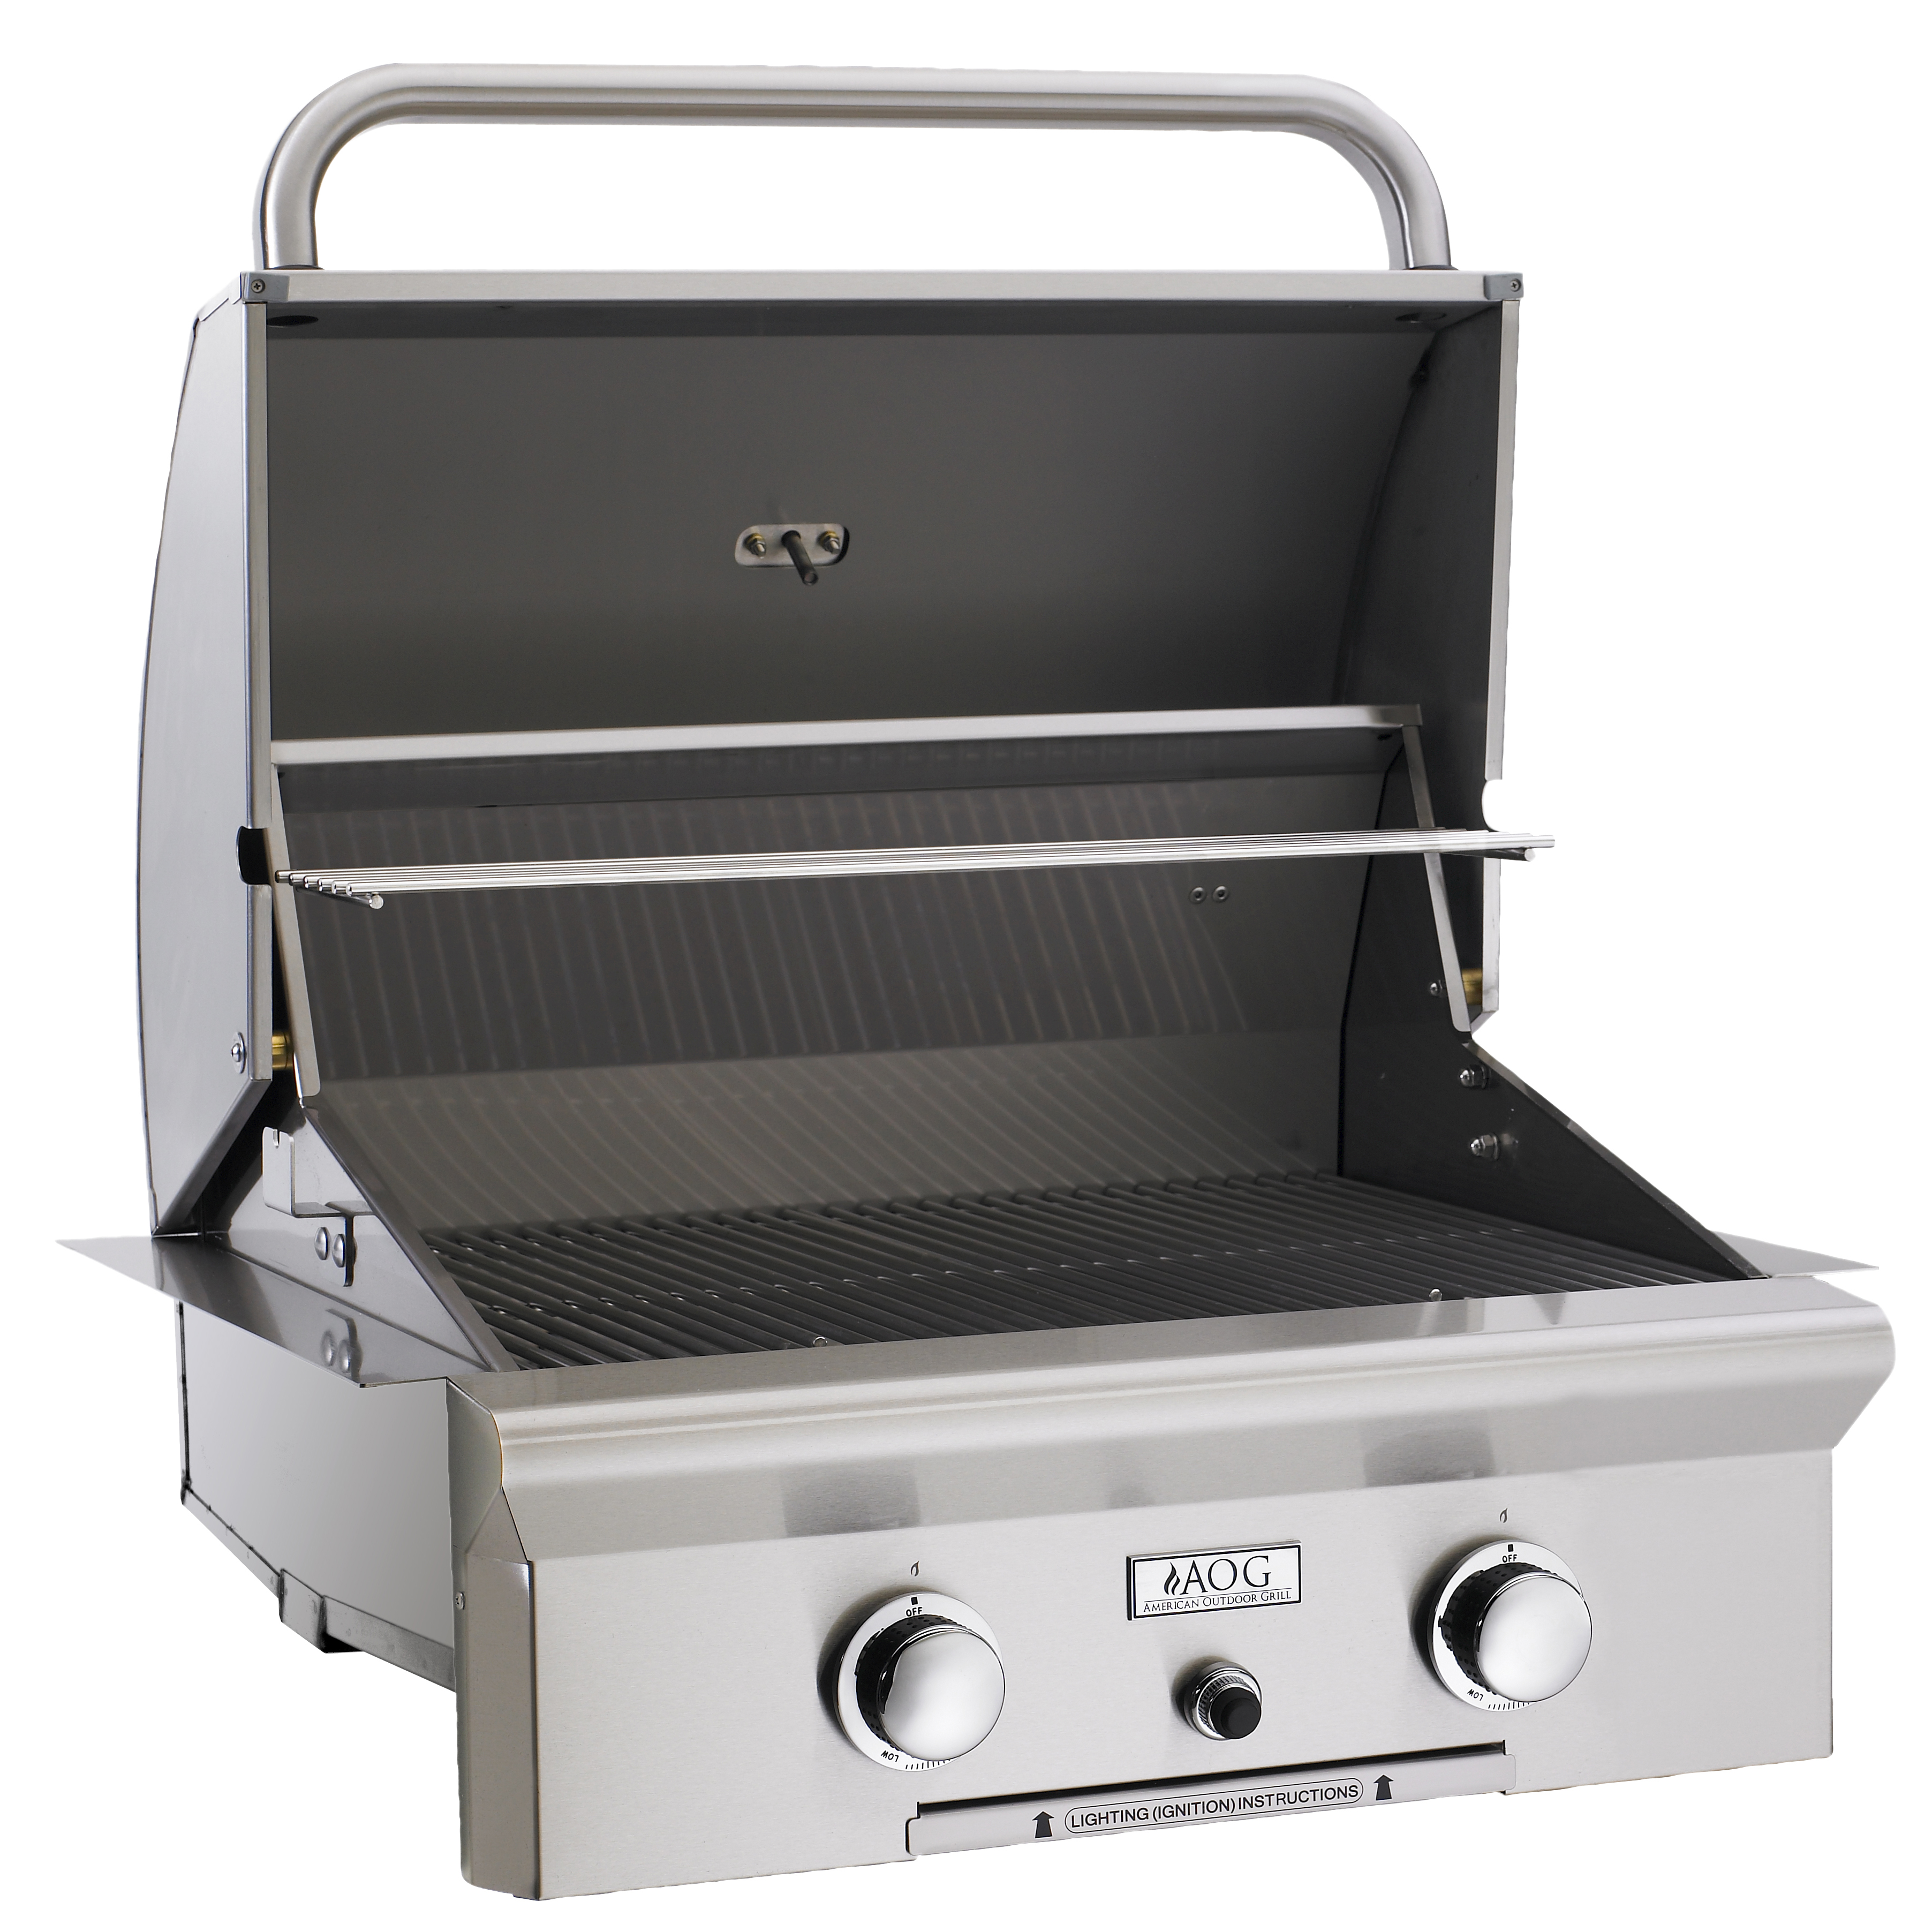 "Grill 24 Aog 24"" ""t"" Series Stainless Steel Built-in Natural Gas ..."